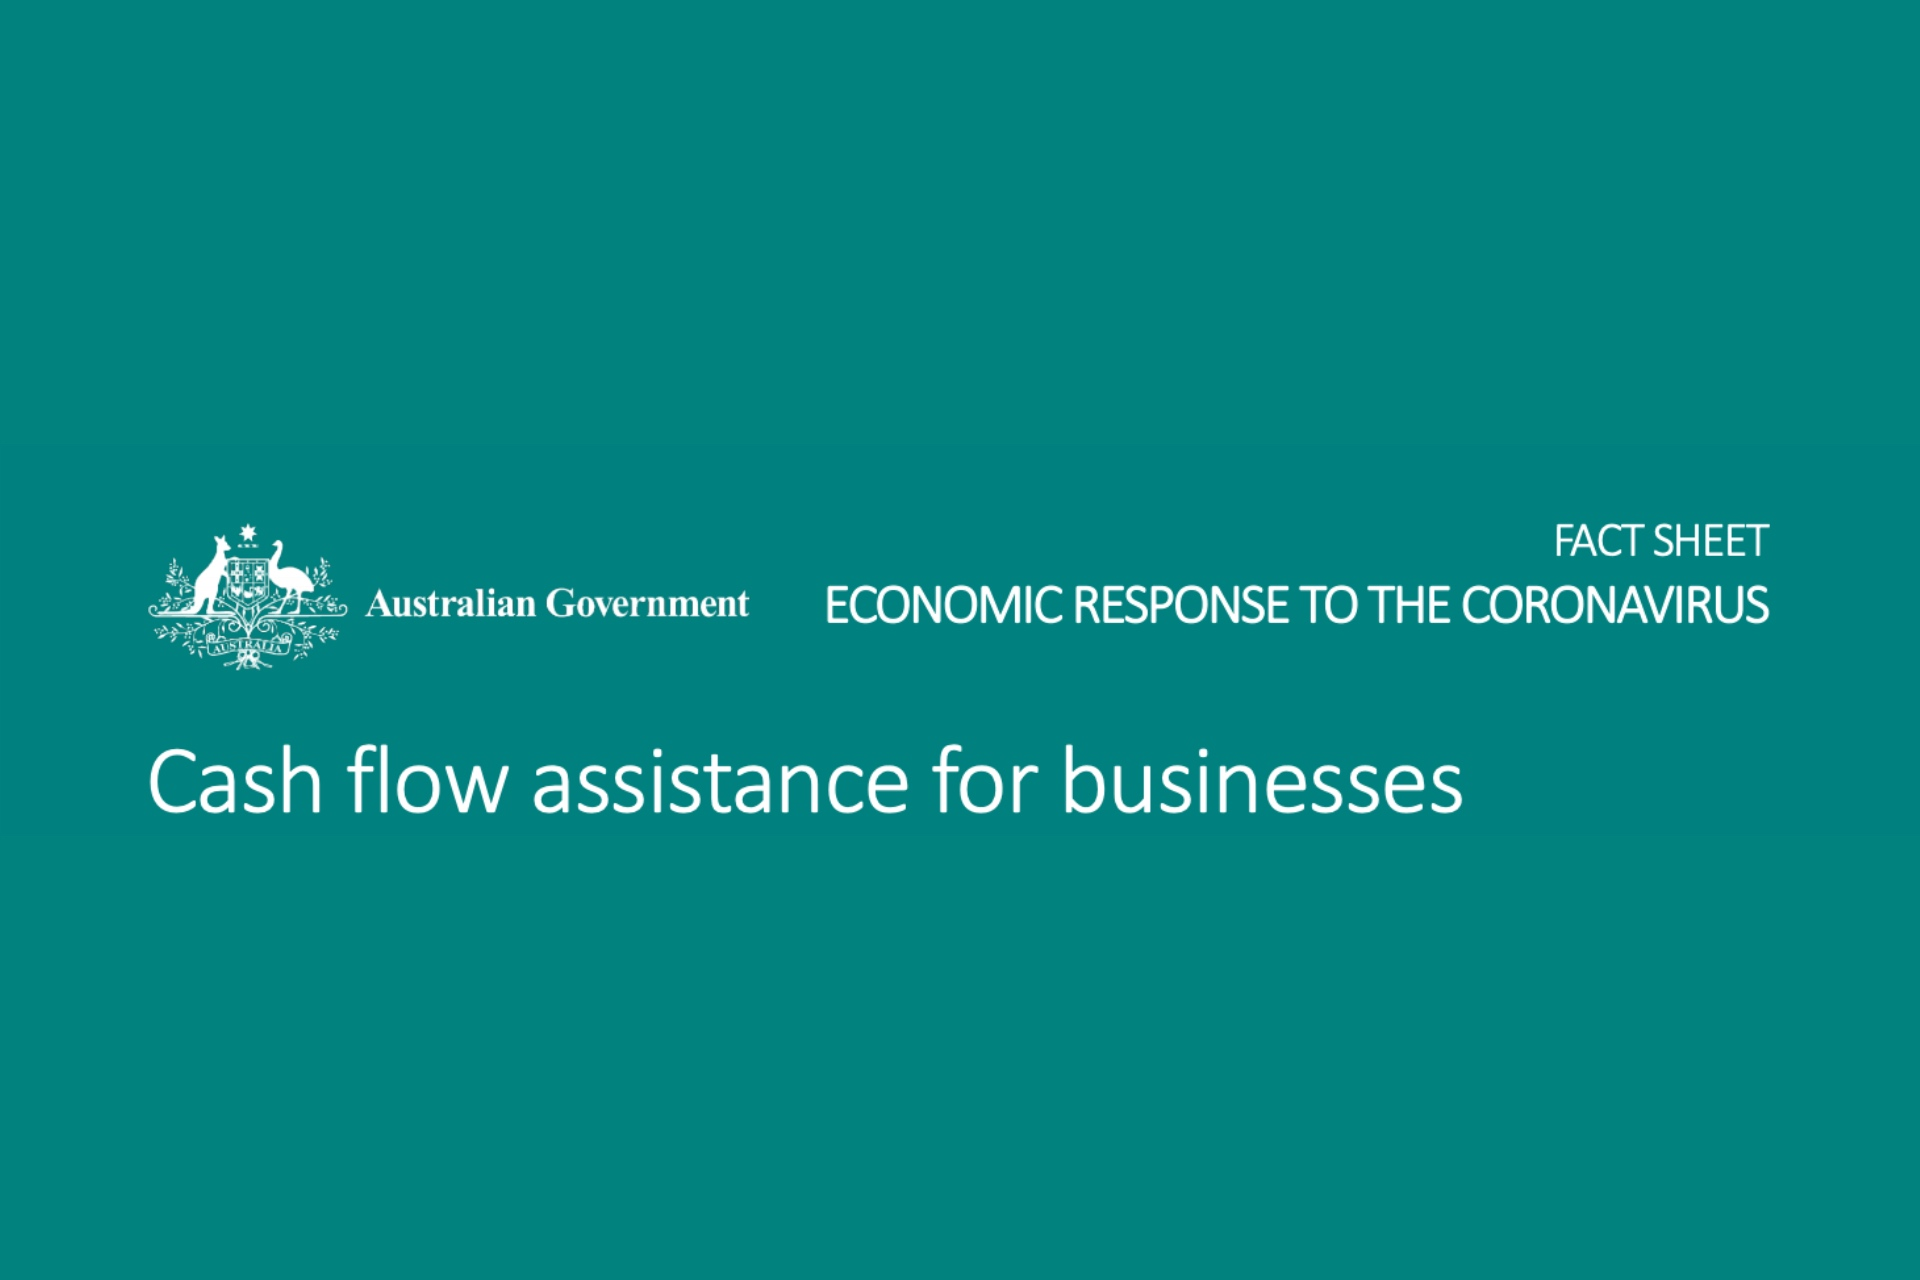 Australian Government Factsheet - Economic Response to the Corona Virus - Cash flow assistance for bussiness